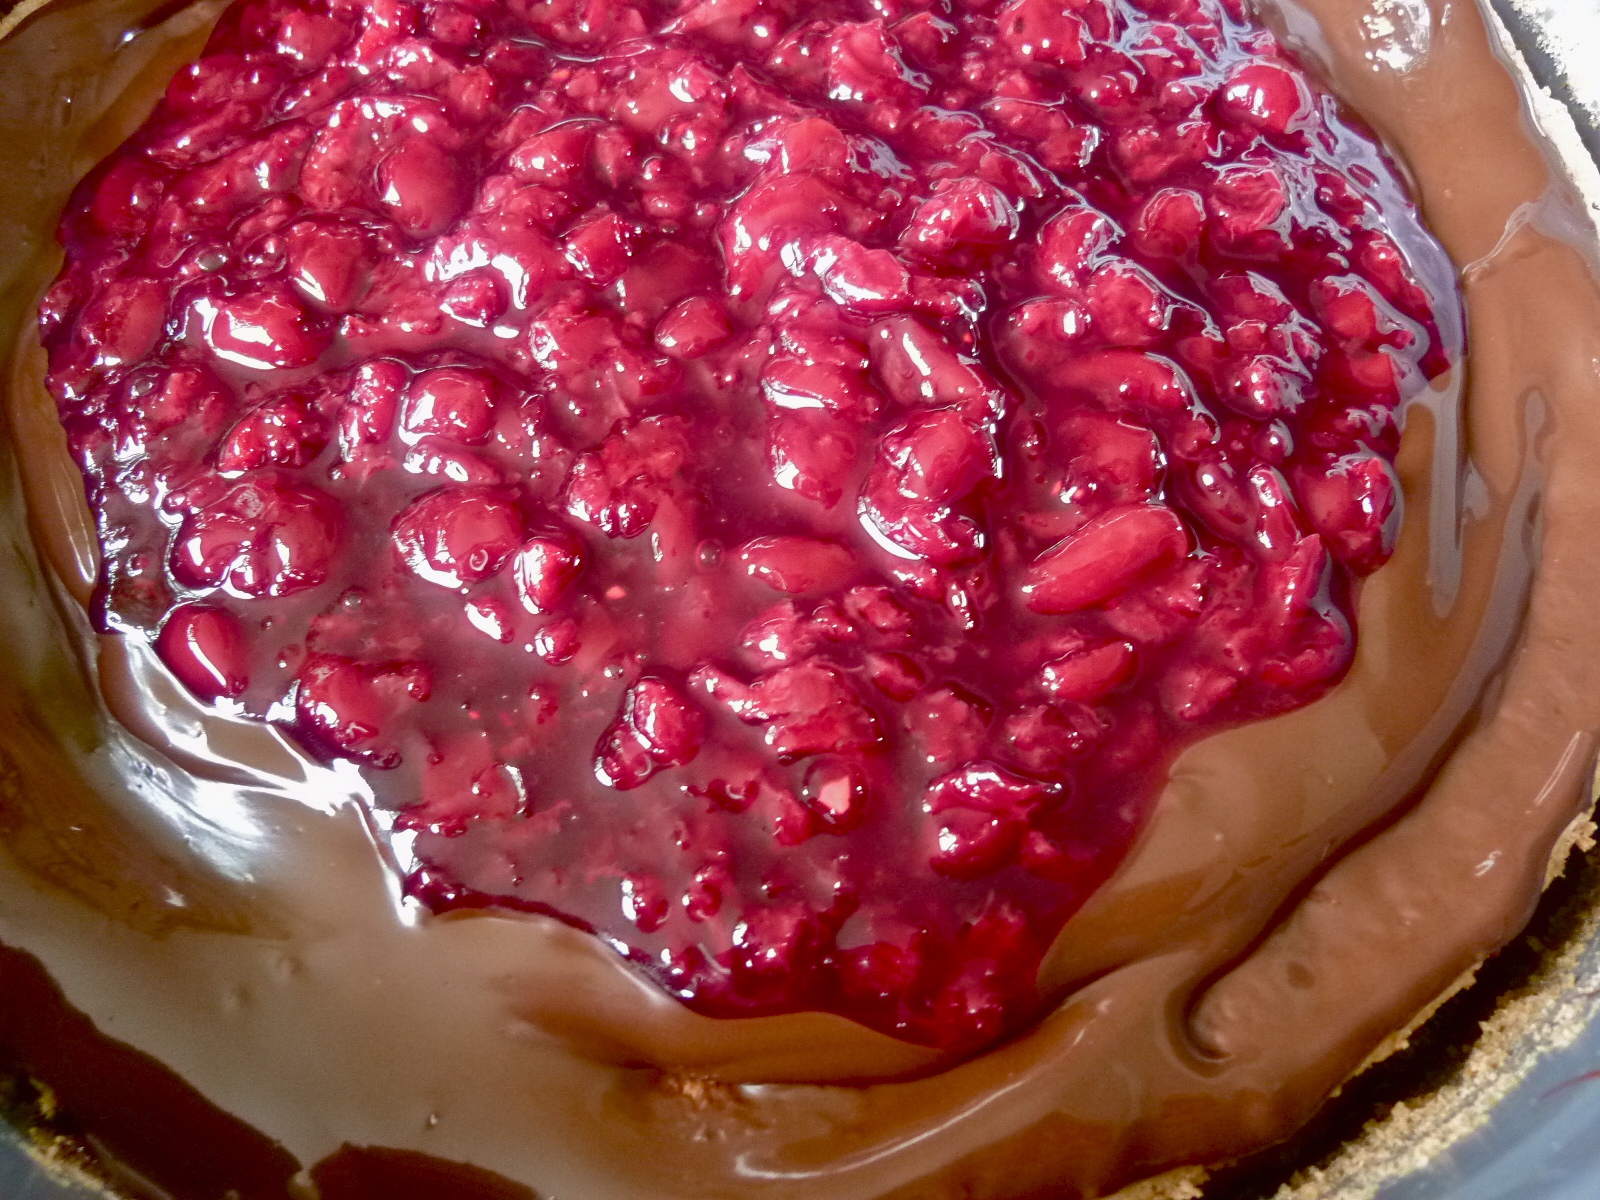 Diary of a Mad Hausfrau: Sour Cherry Chocolate Hazelnut Torte